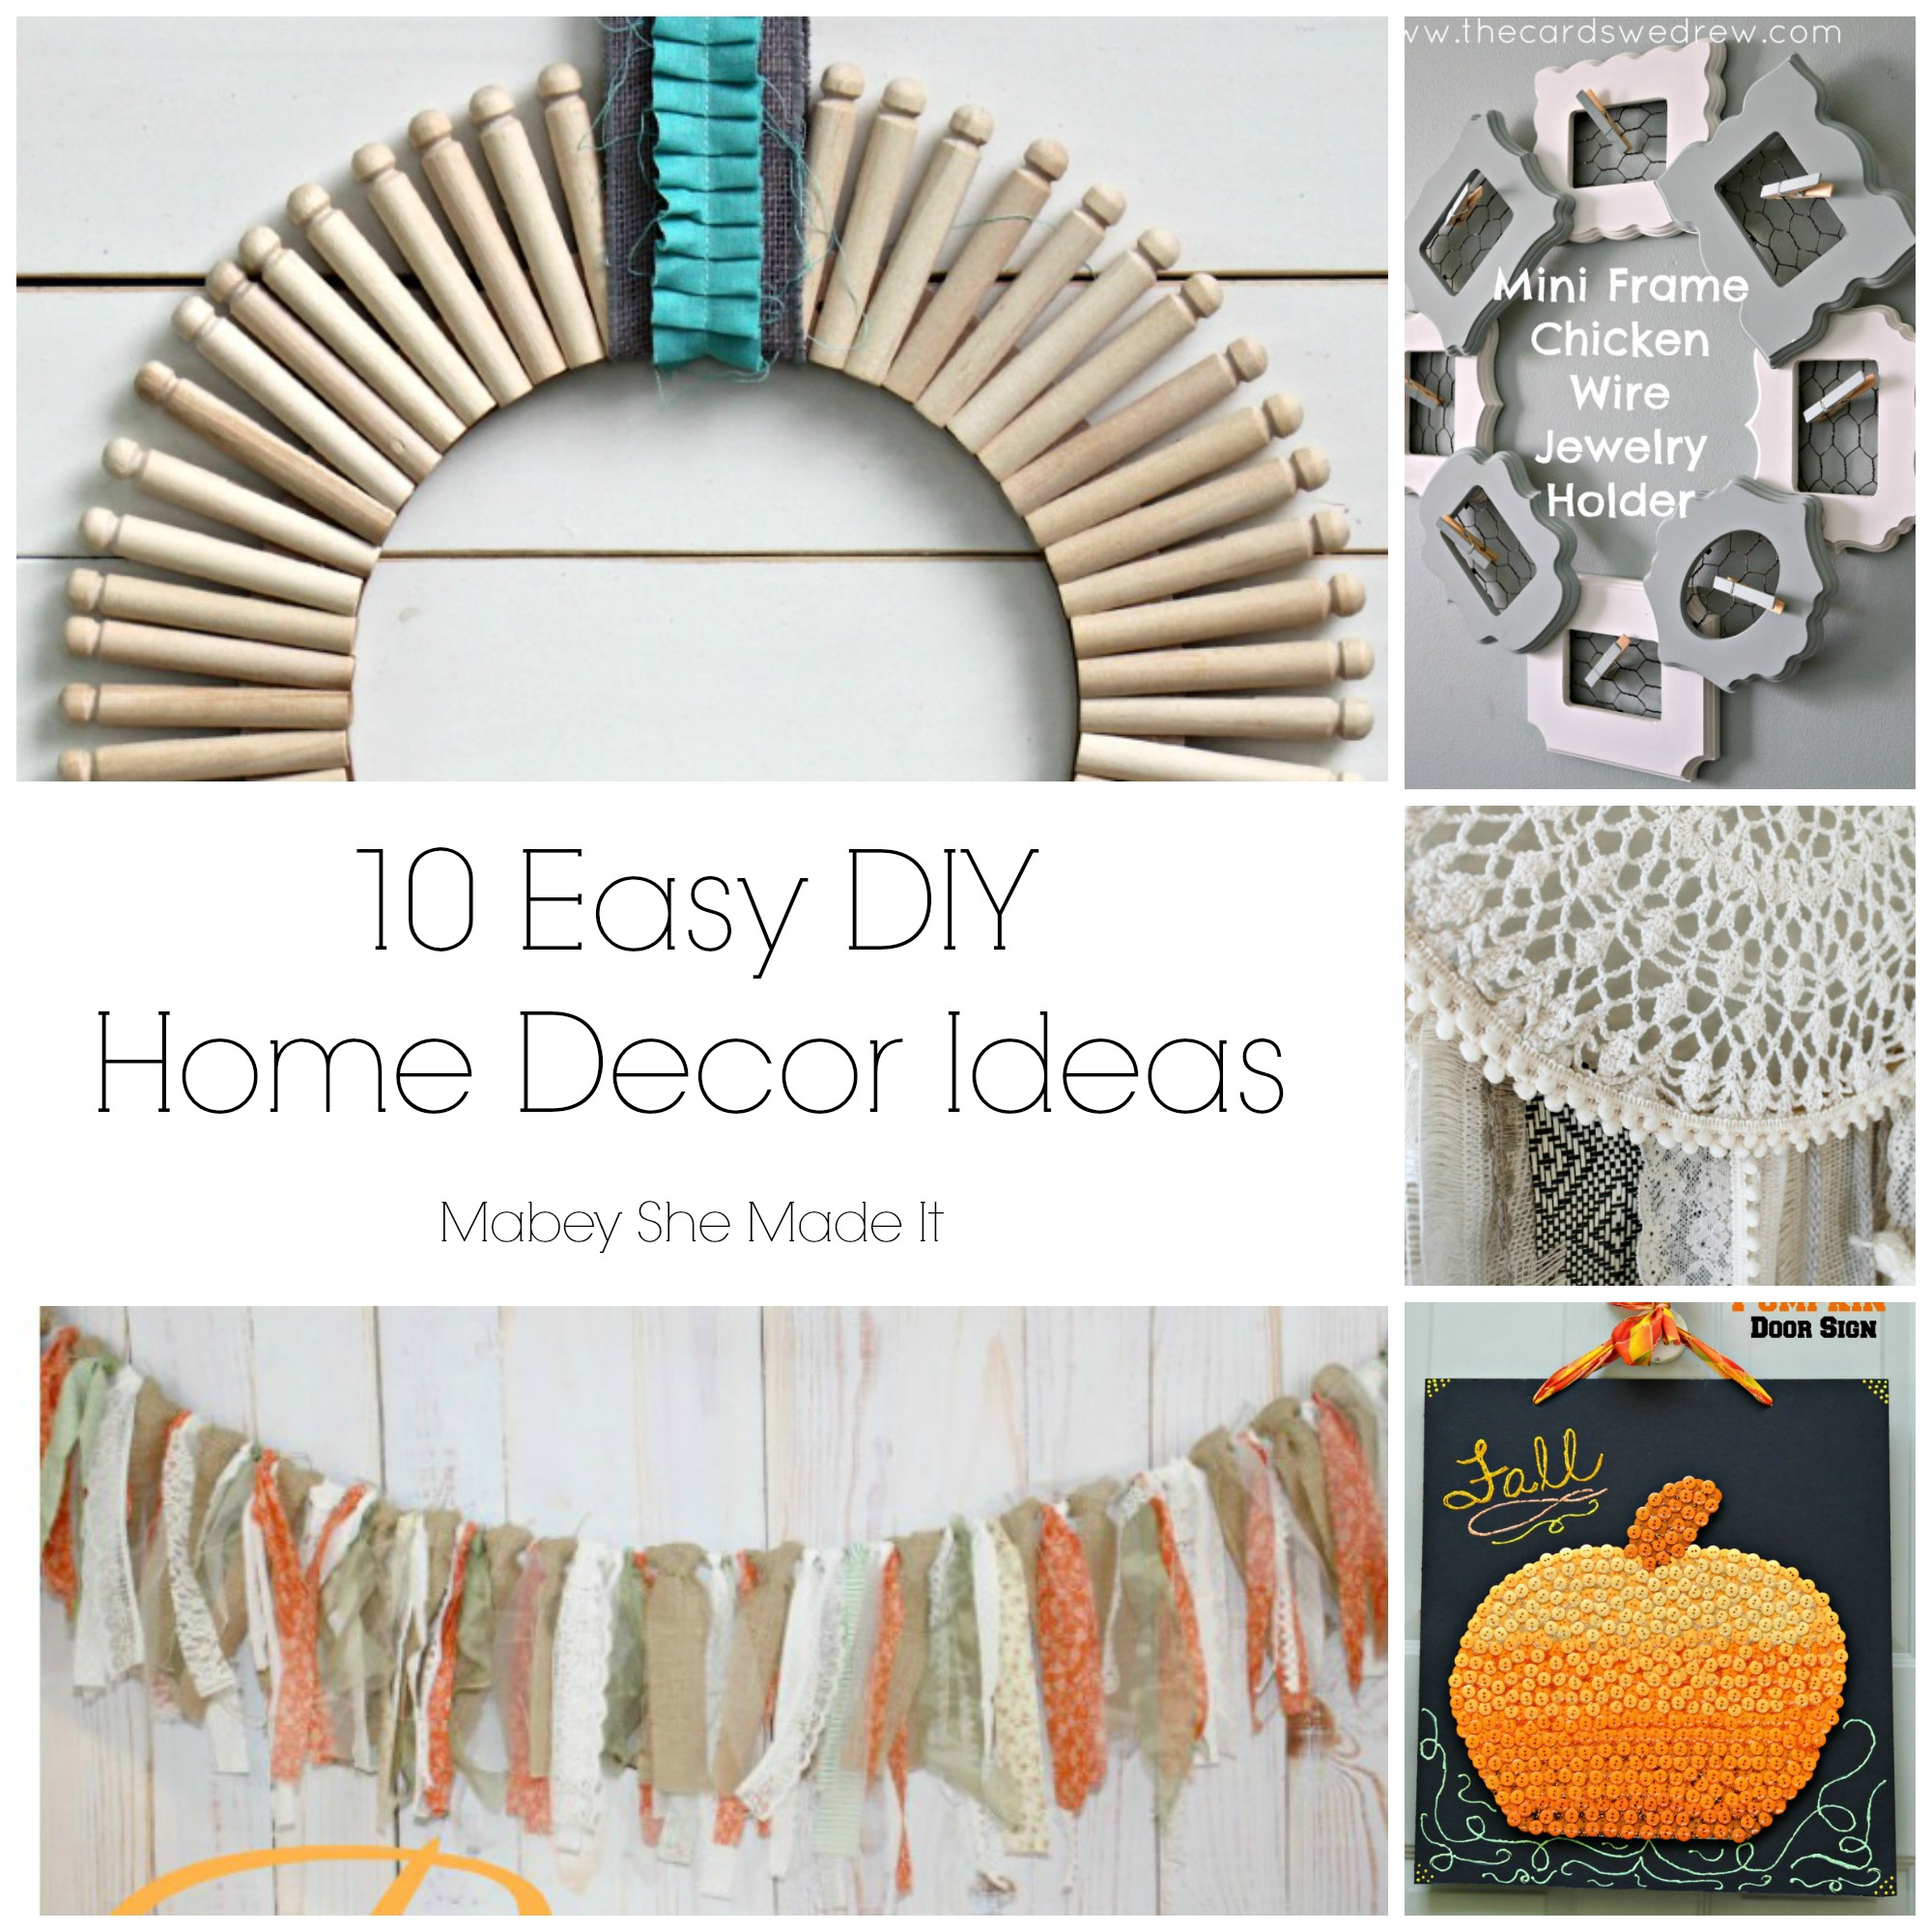 10 Fun Home Decor Ideas | Mabey She Made It